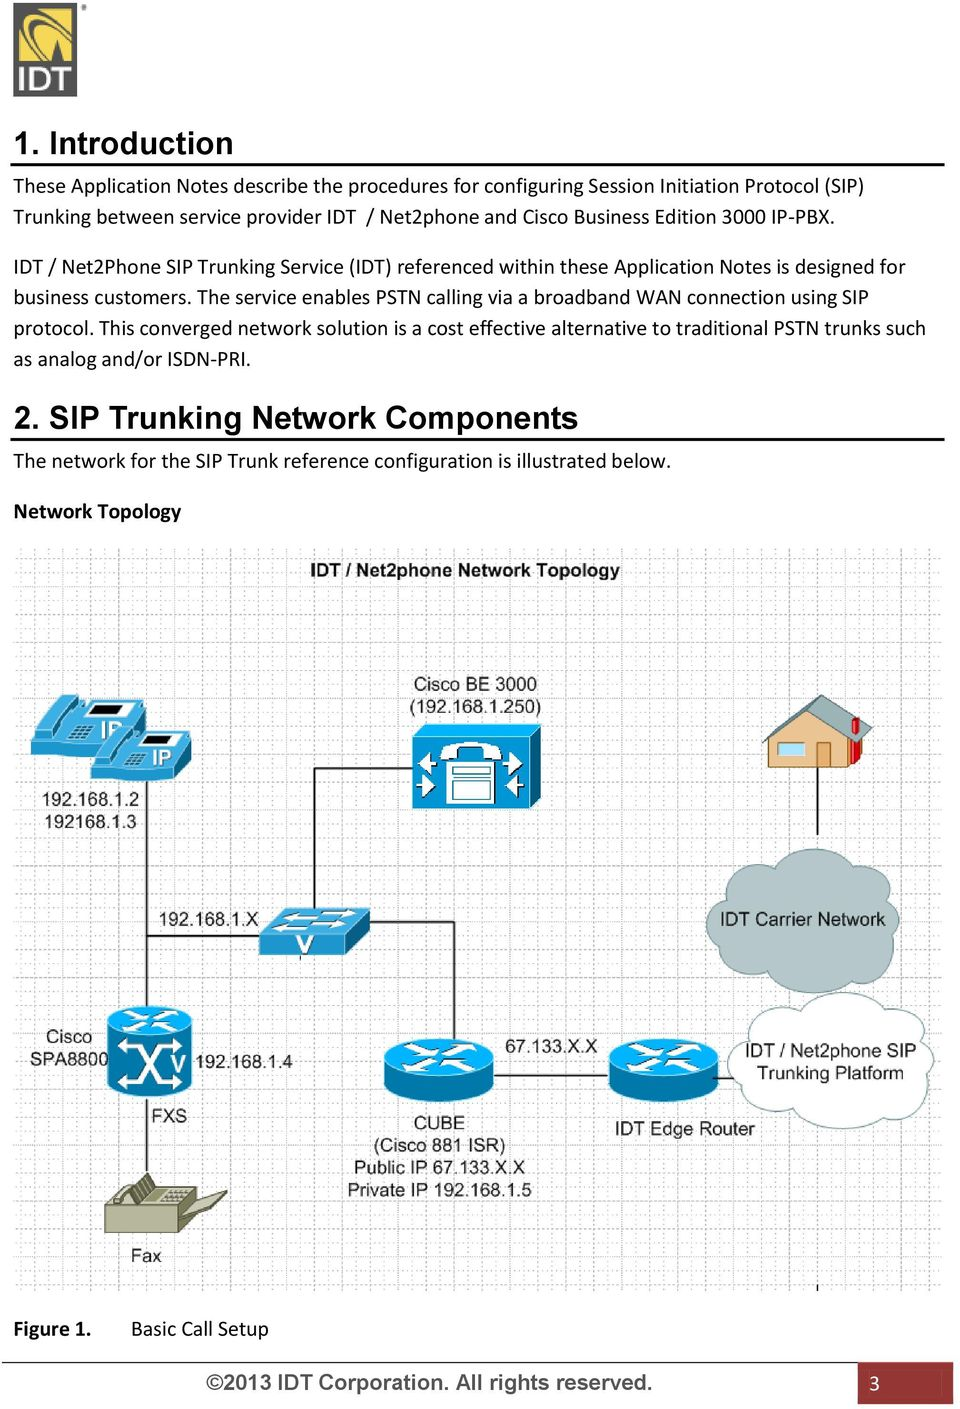 IDT / Net2phone SIP Trunking Configuration Guide for Cisco Business